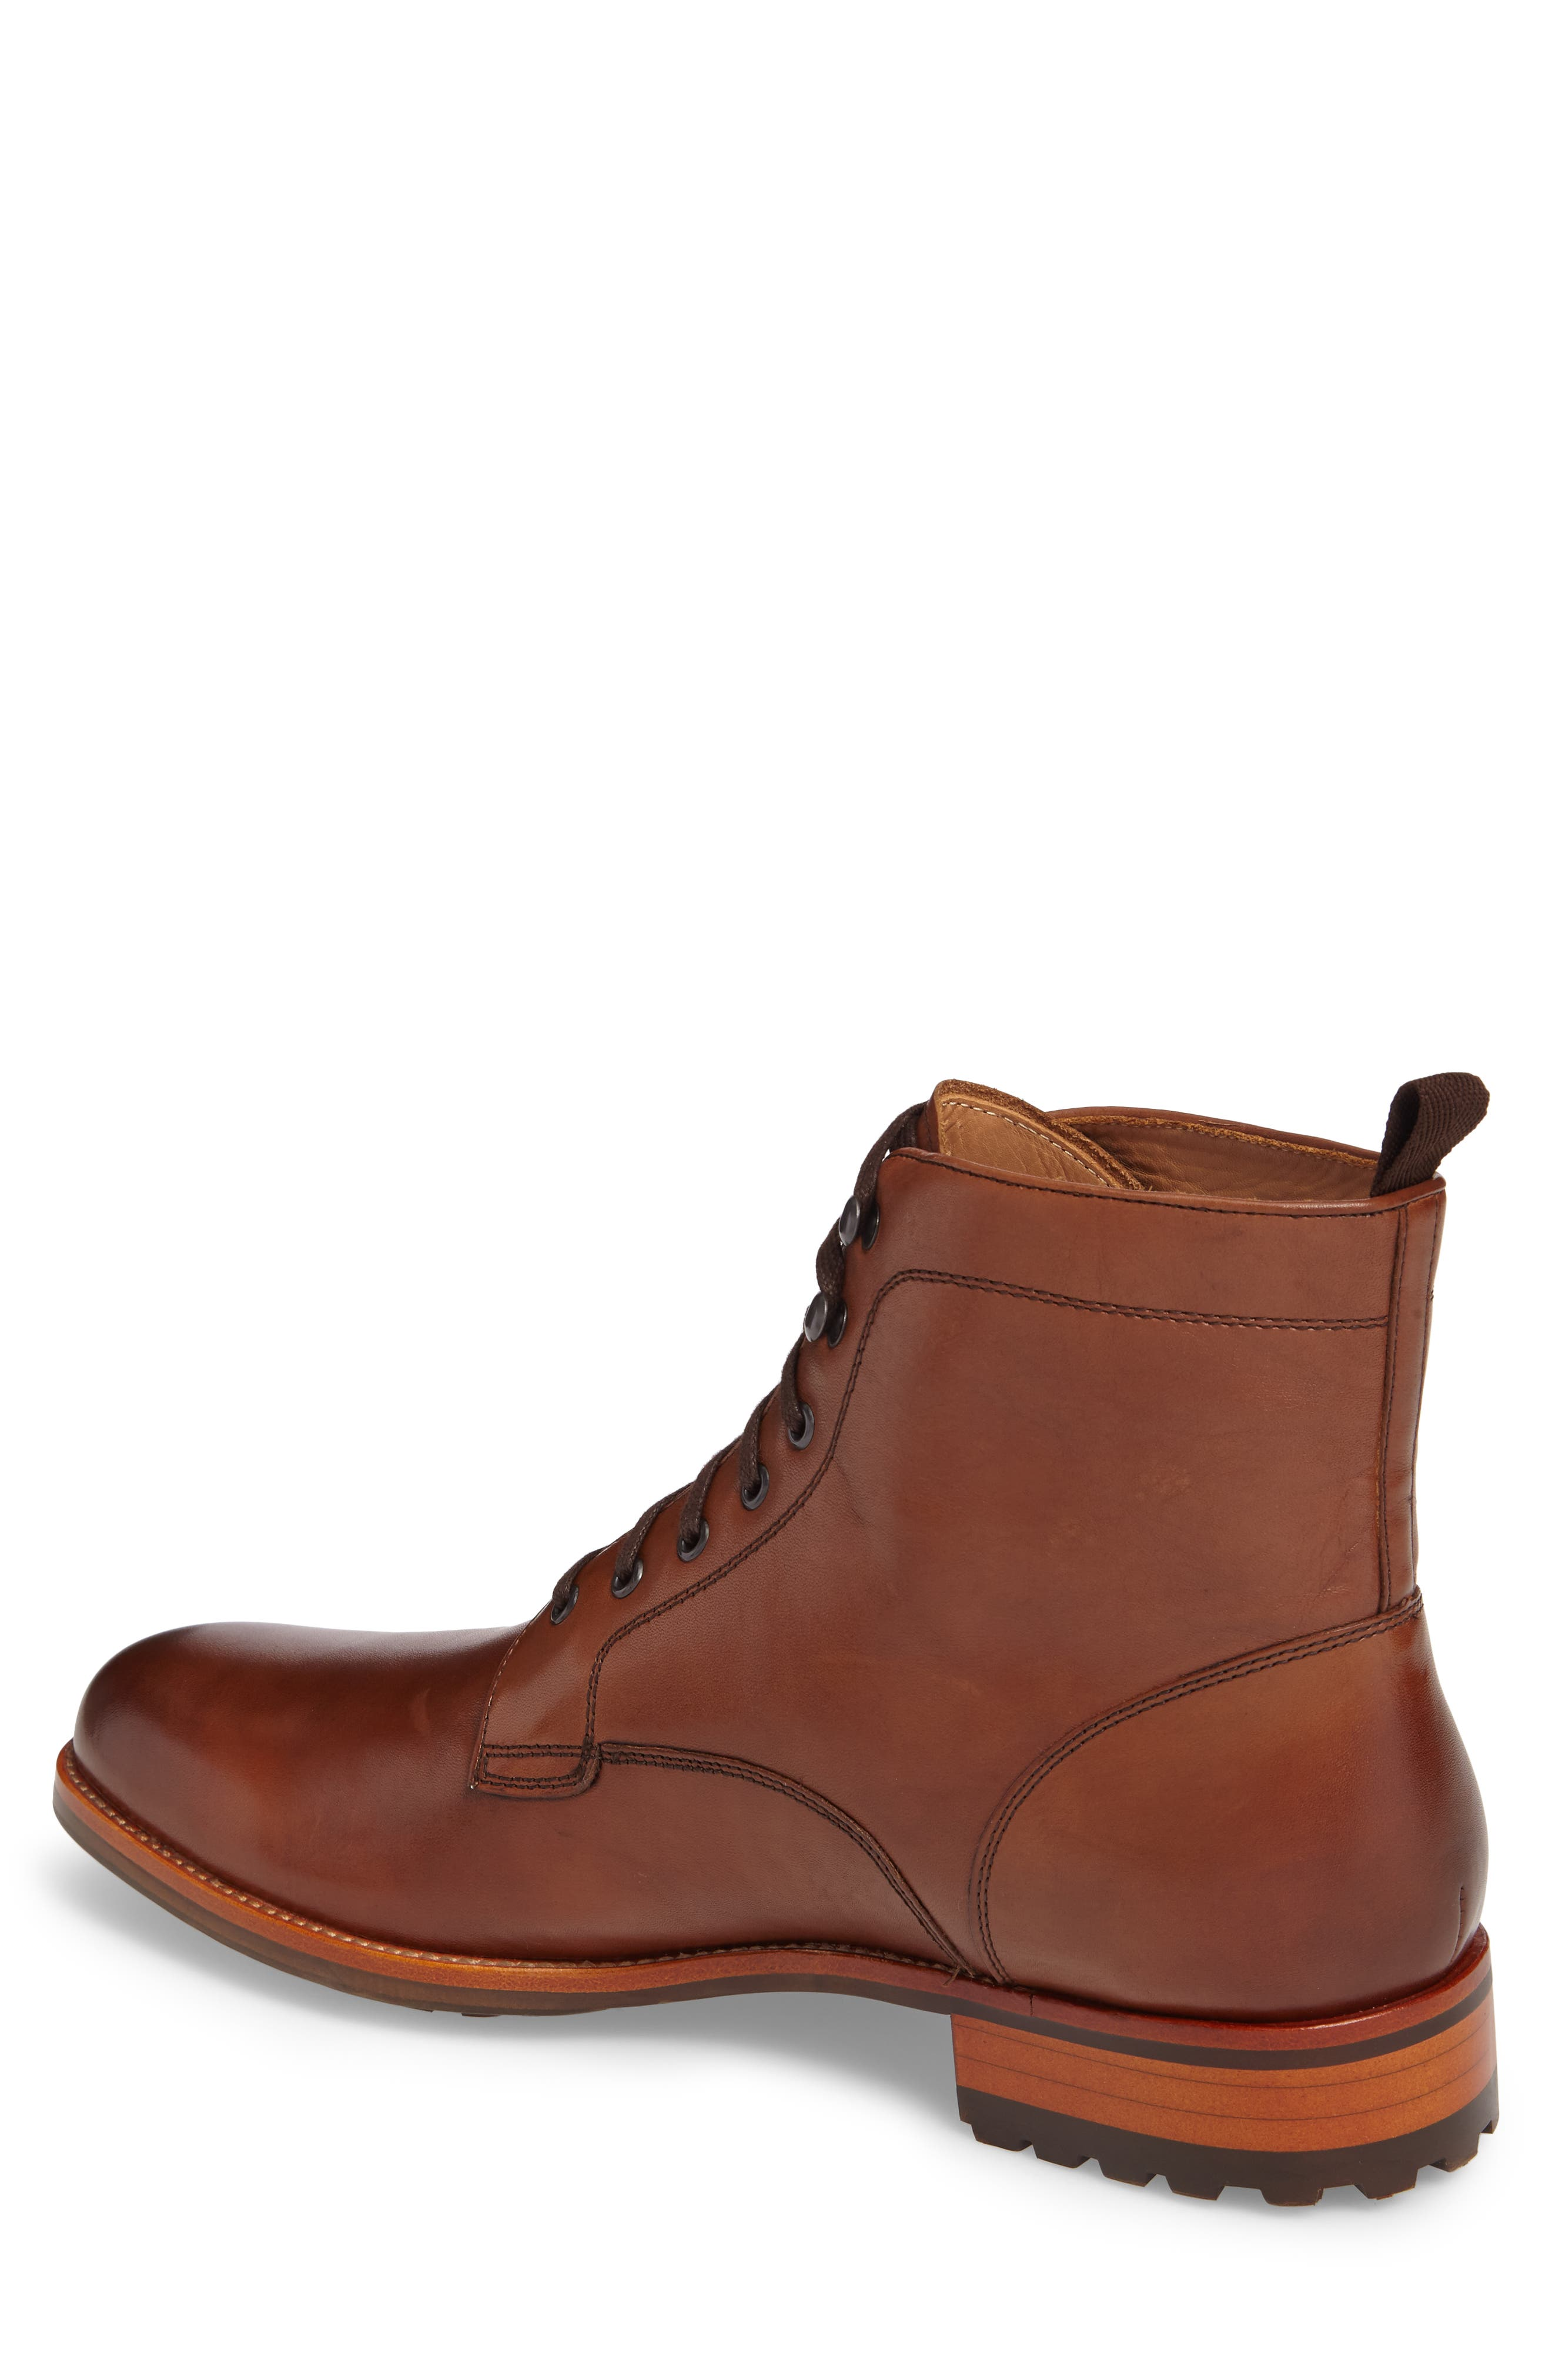 Axeford Plain Toe Boot,                             Alternate thumbnail 2, color,                             Luggage Leather